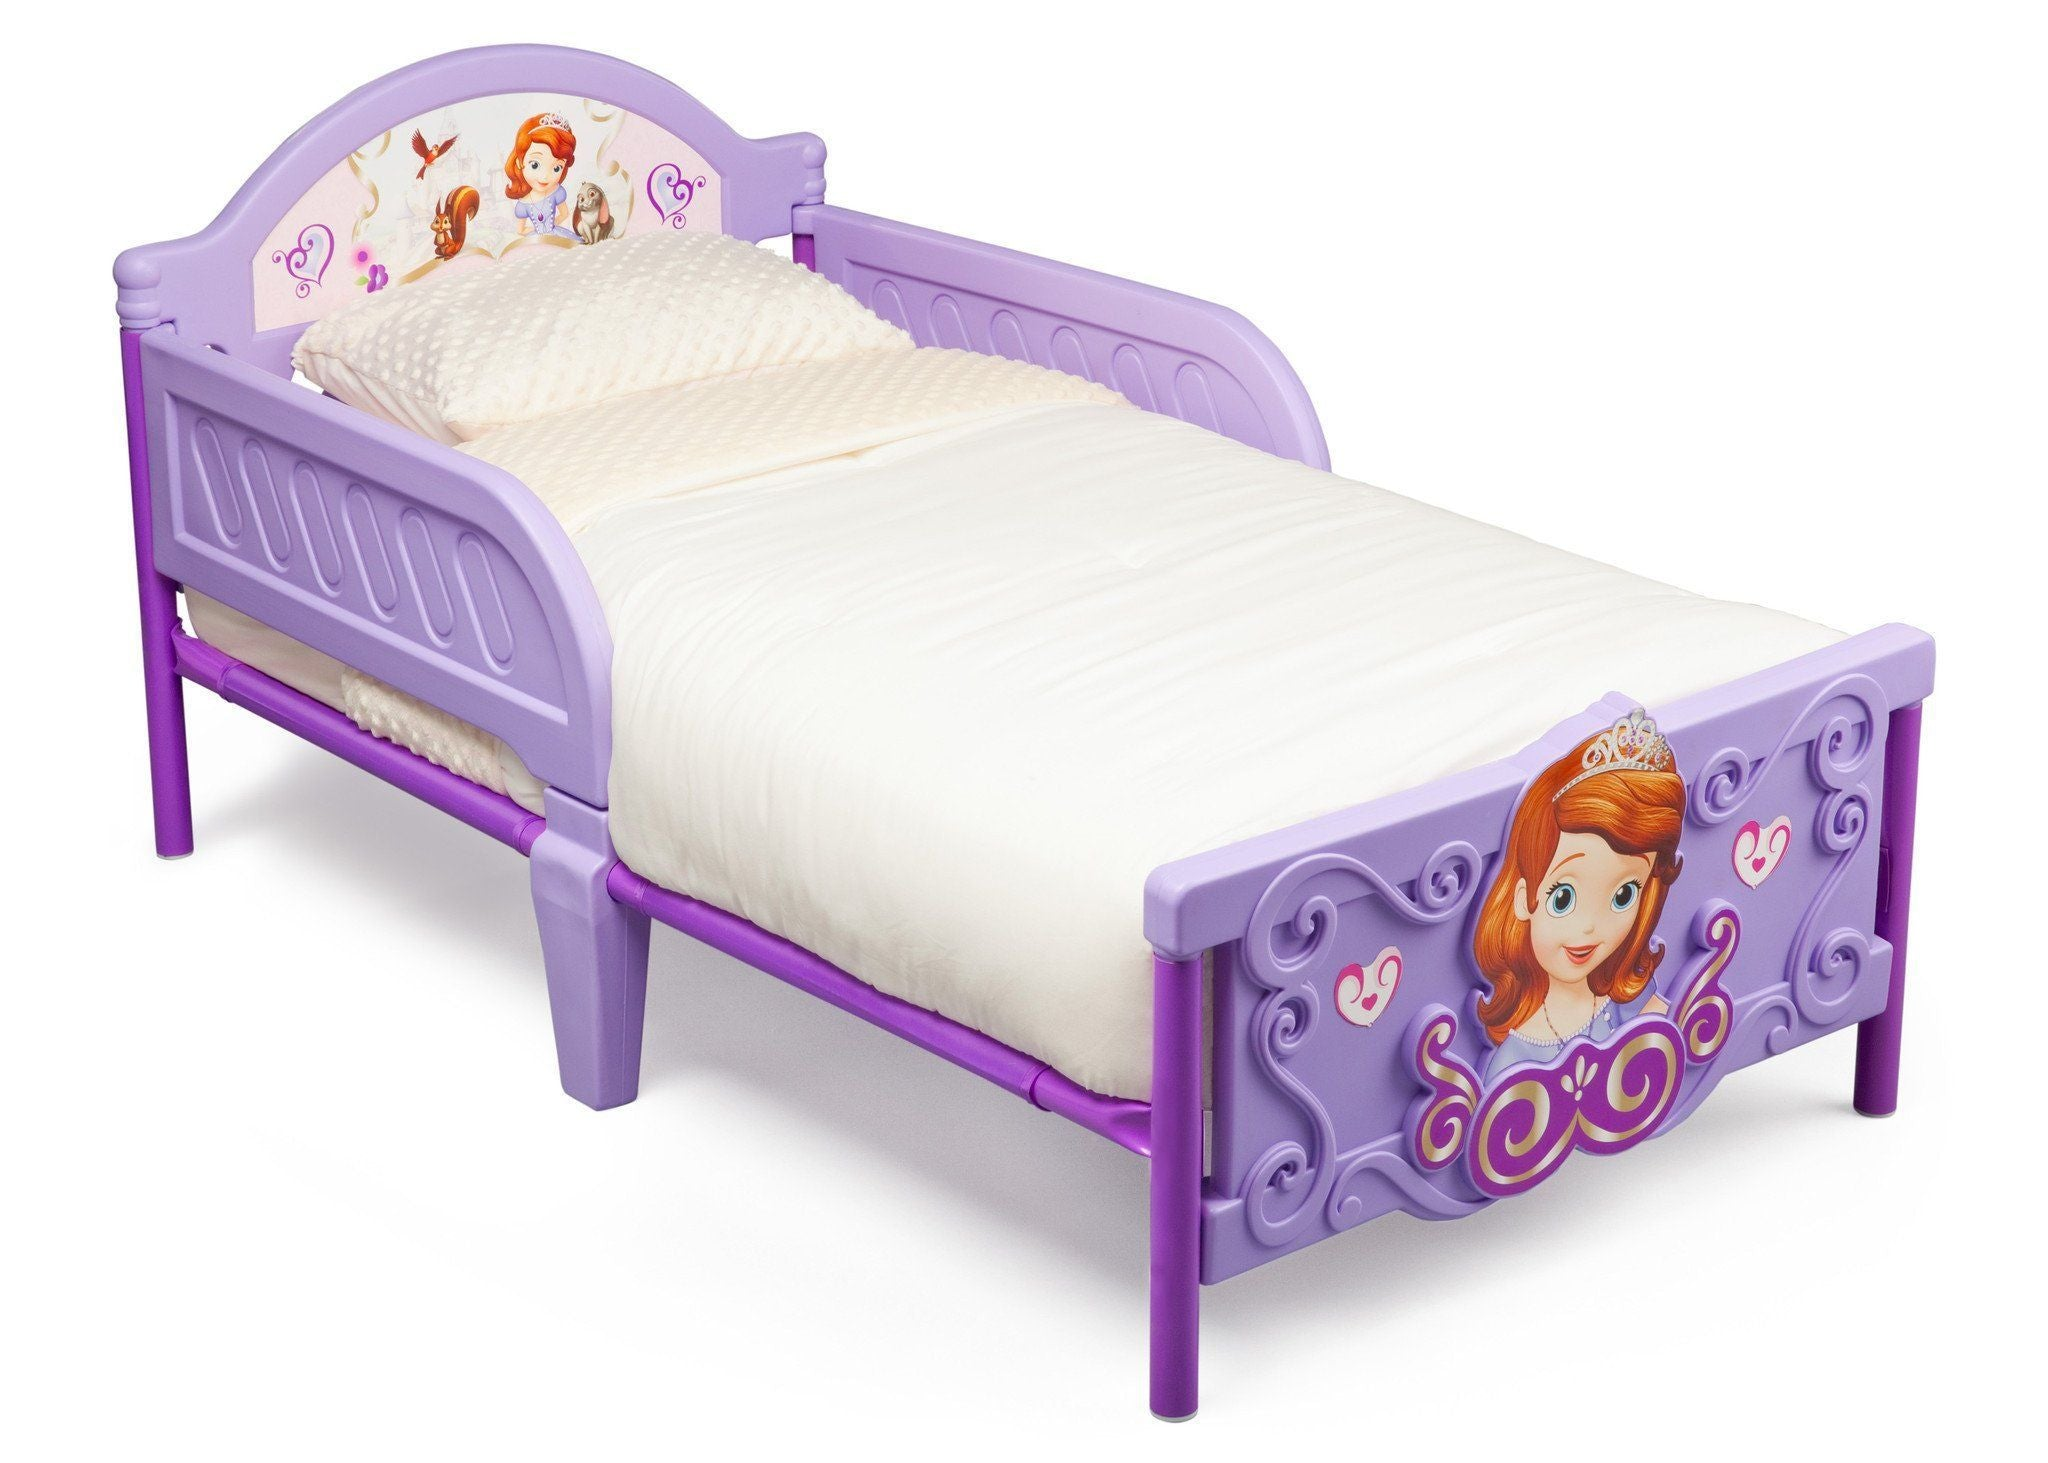 Sofia the First Plastic 3D Toddler Bed | Delta Children